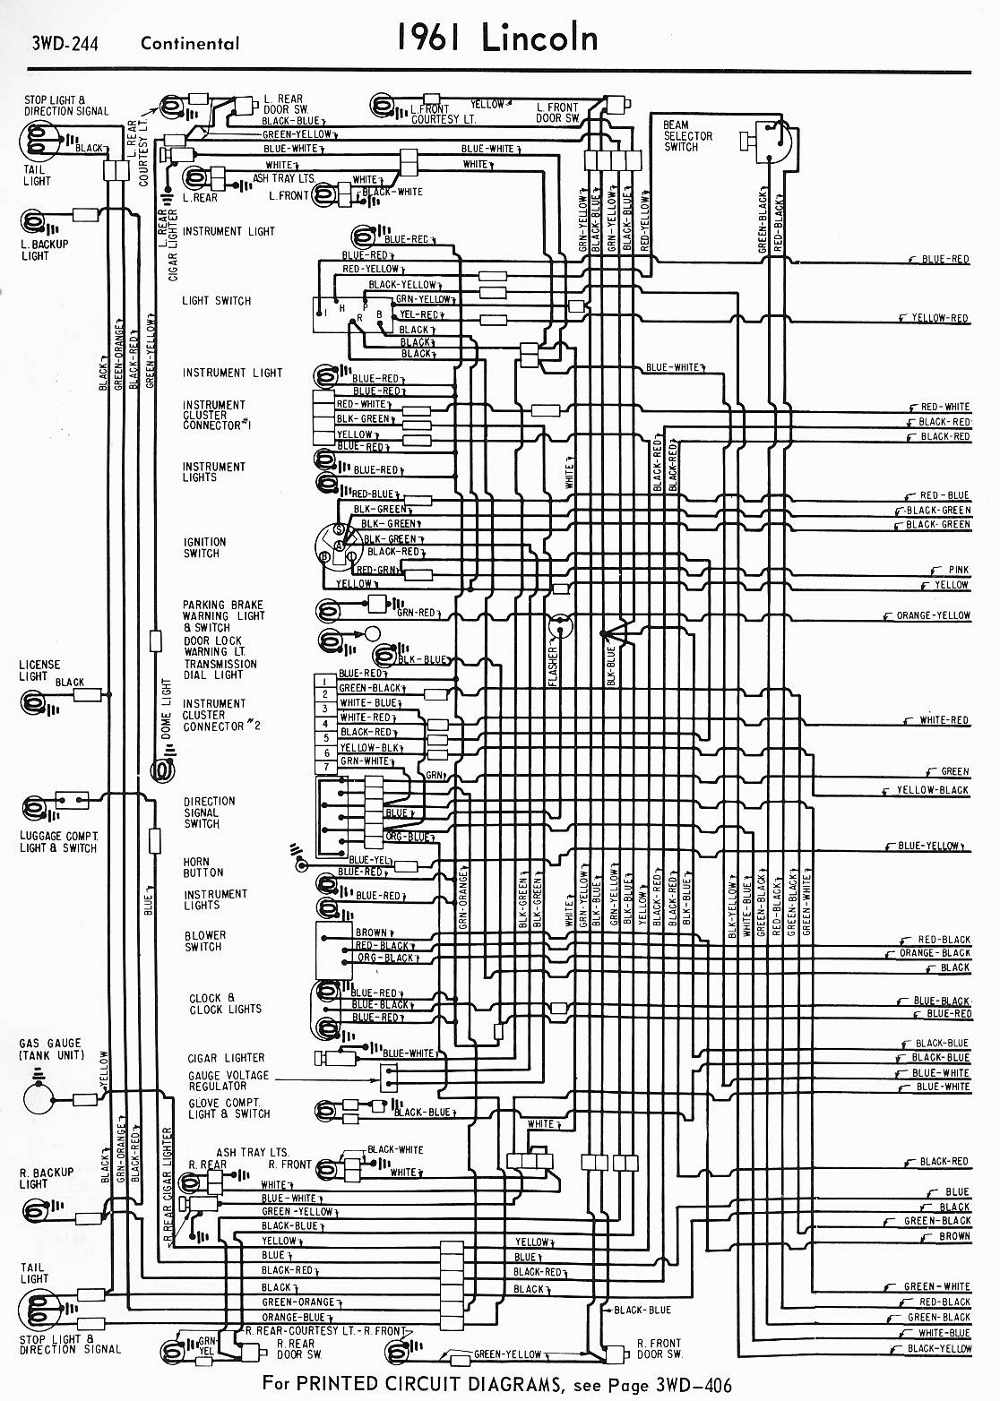 lincoln zephyr wiring diagram ze 5144  1960 lincoln wiring diagram download diagram  ze 5144  1960 lincoln wiring diagram